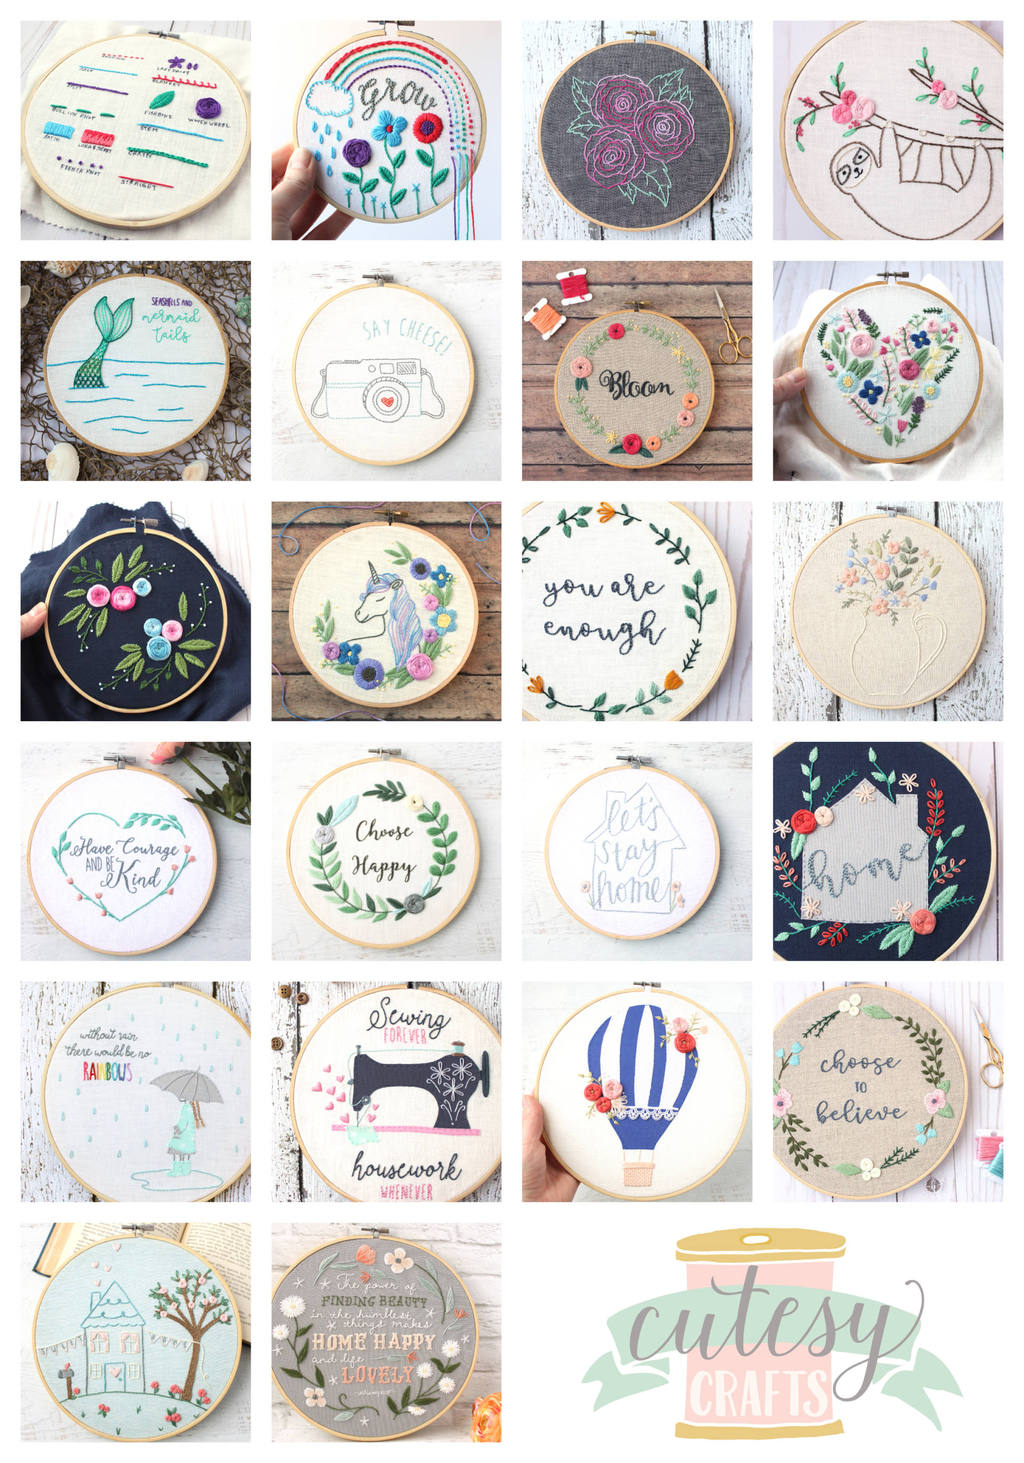 Sweet Home Embroidery Book Review 8